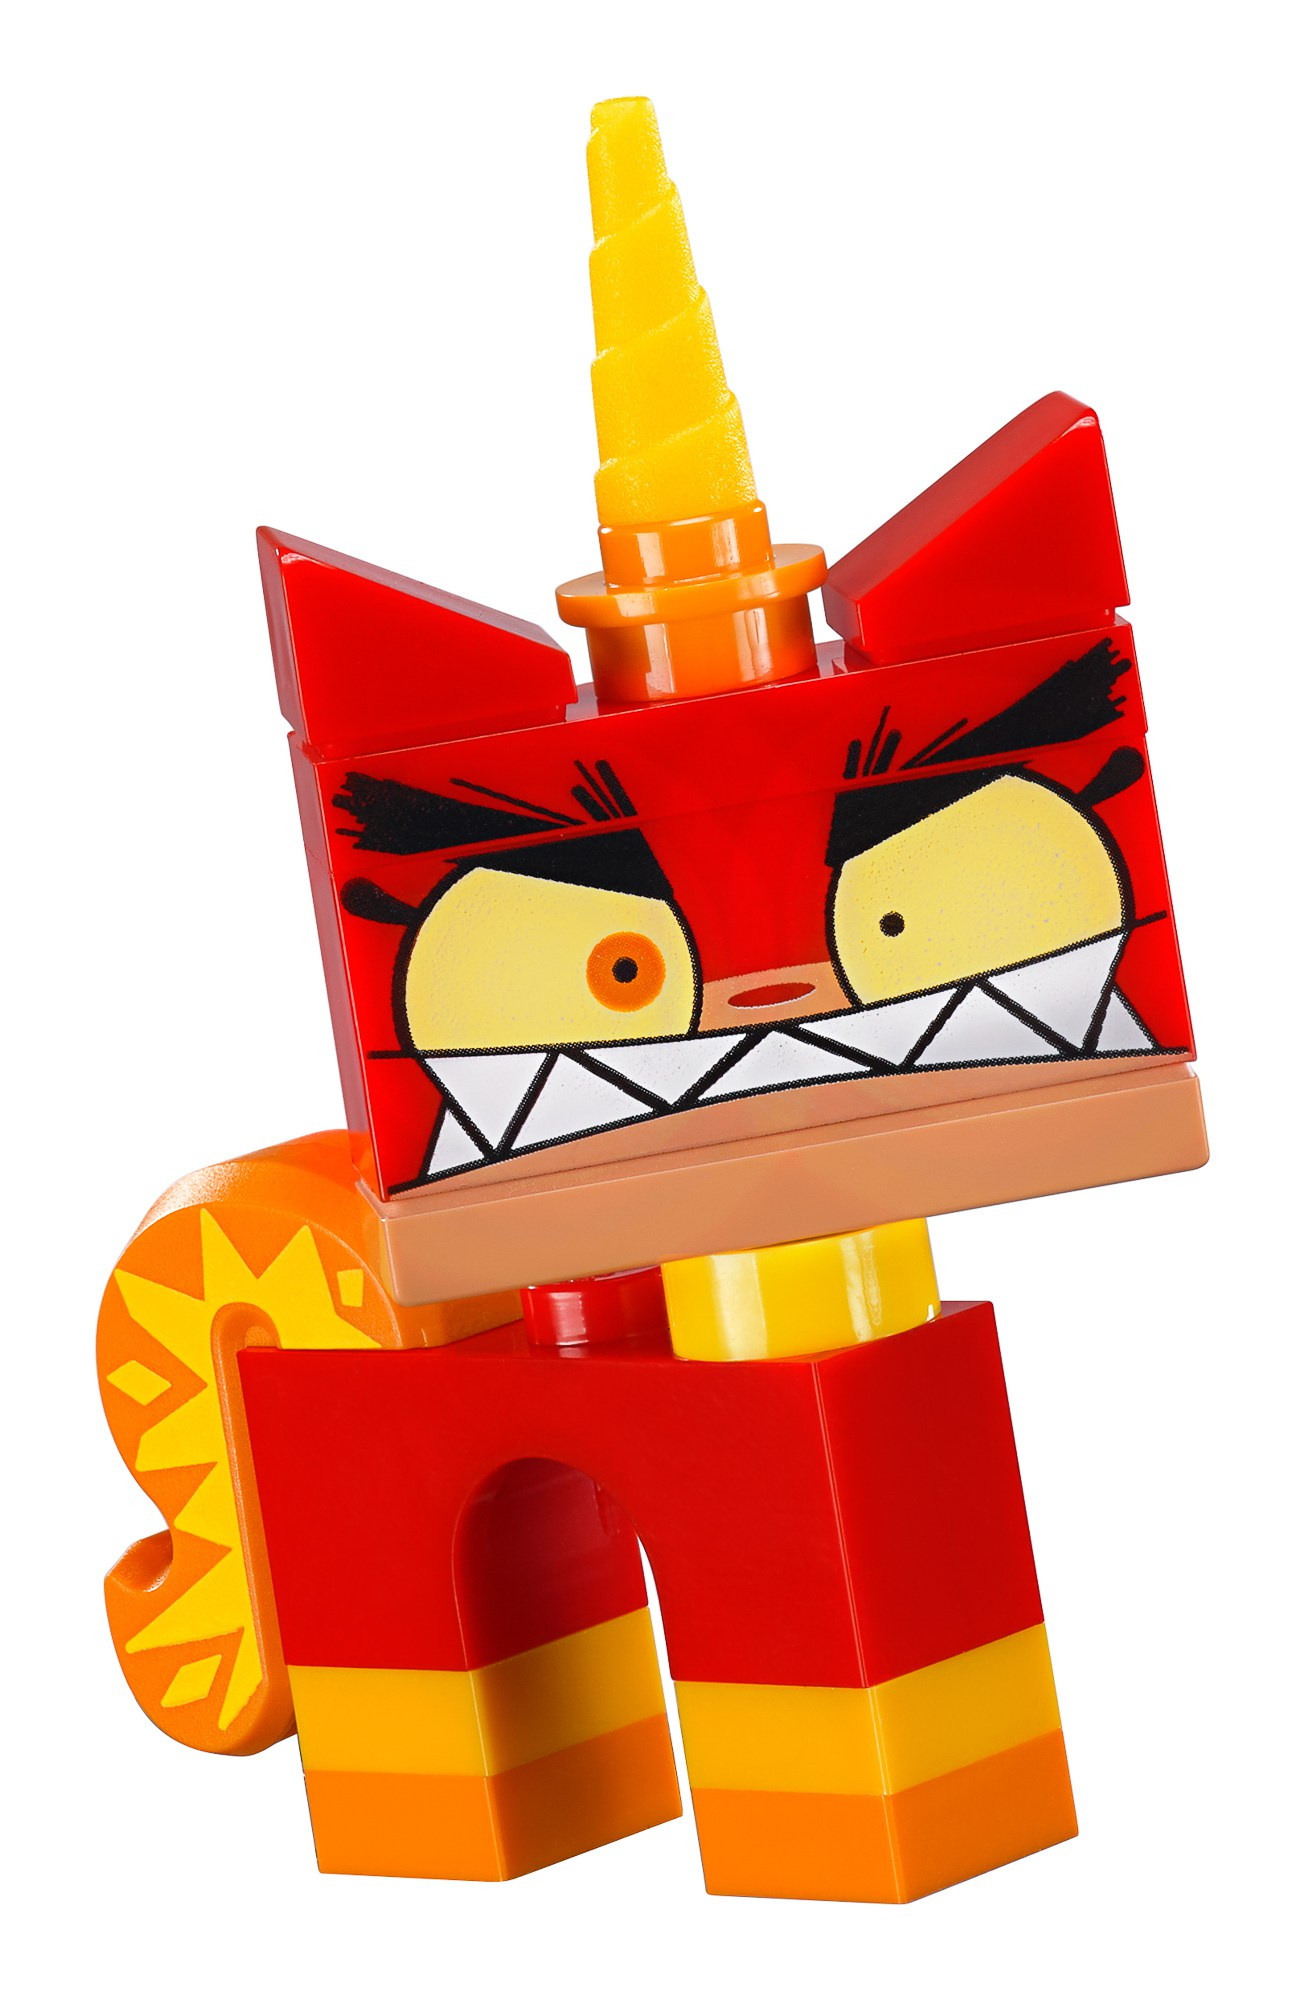 *IN HAND* Lego Unikitty Series 1 Minifigures 41775 YOU CHOOSE